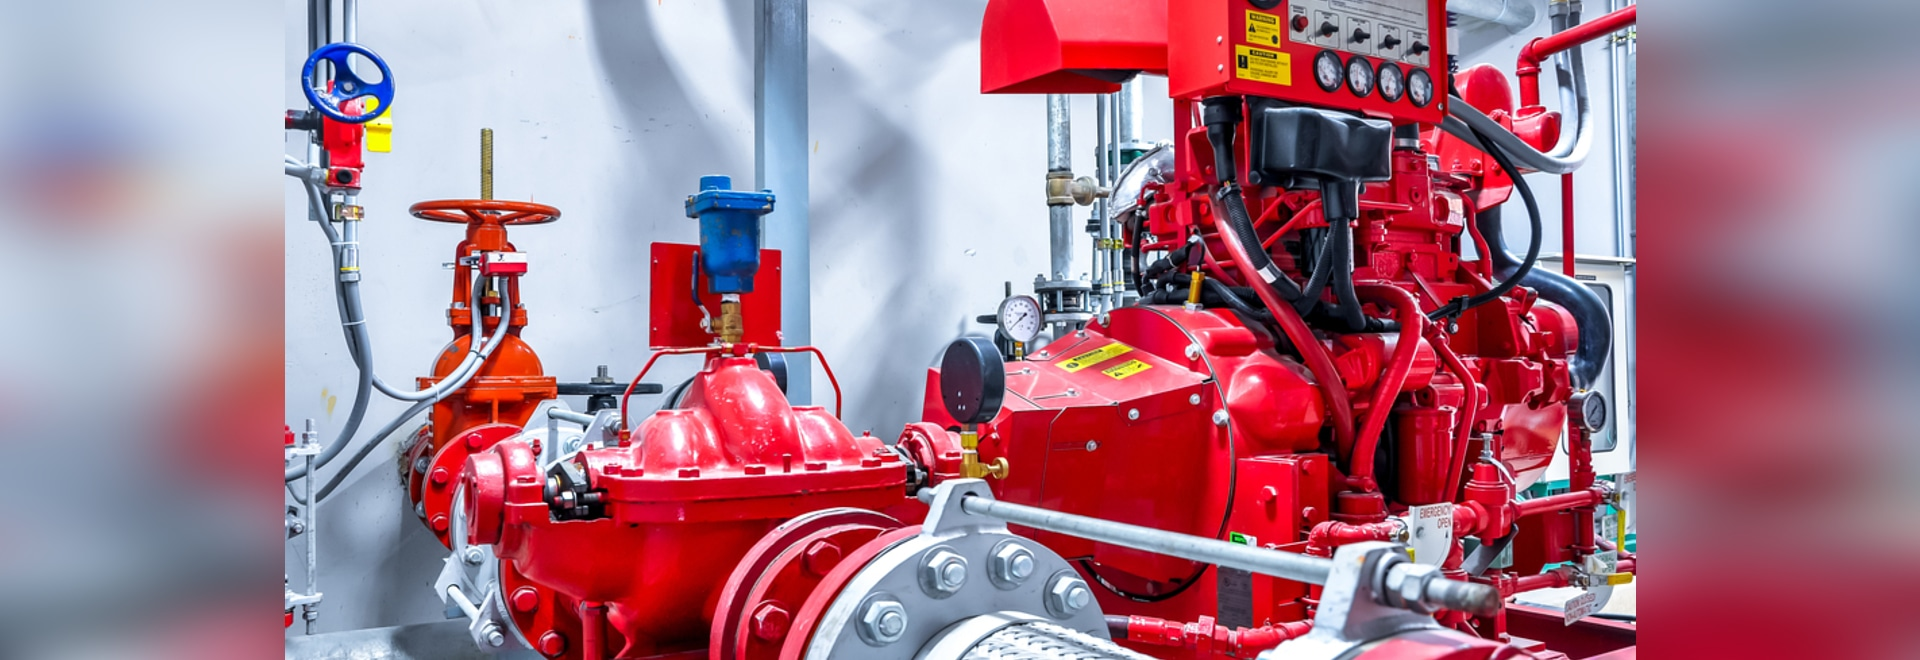 NOZZLES FOR FIRE PROTECTION